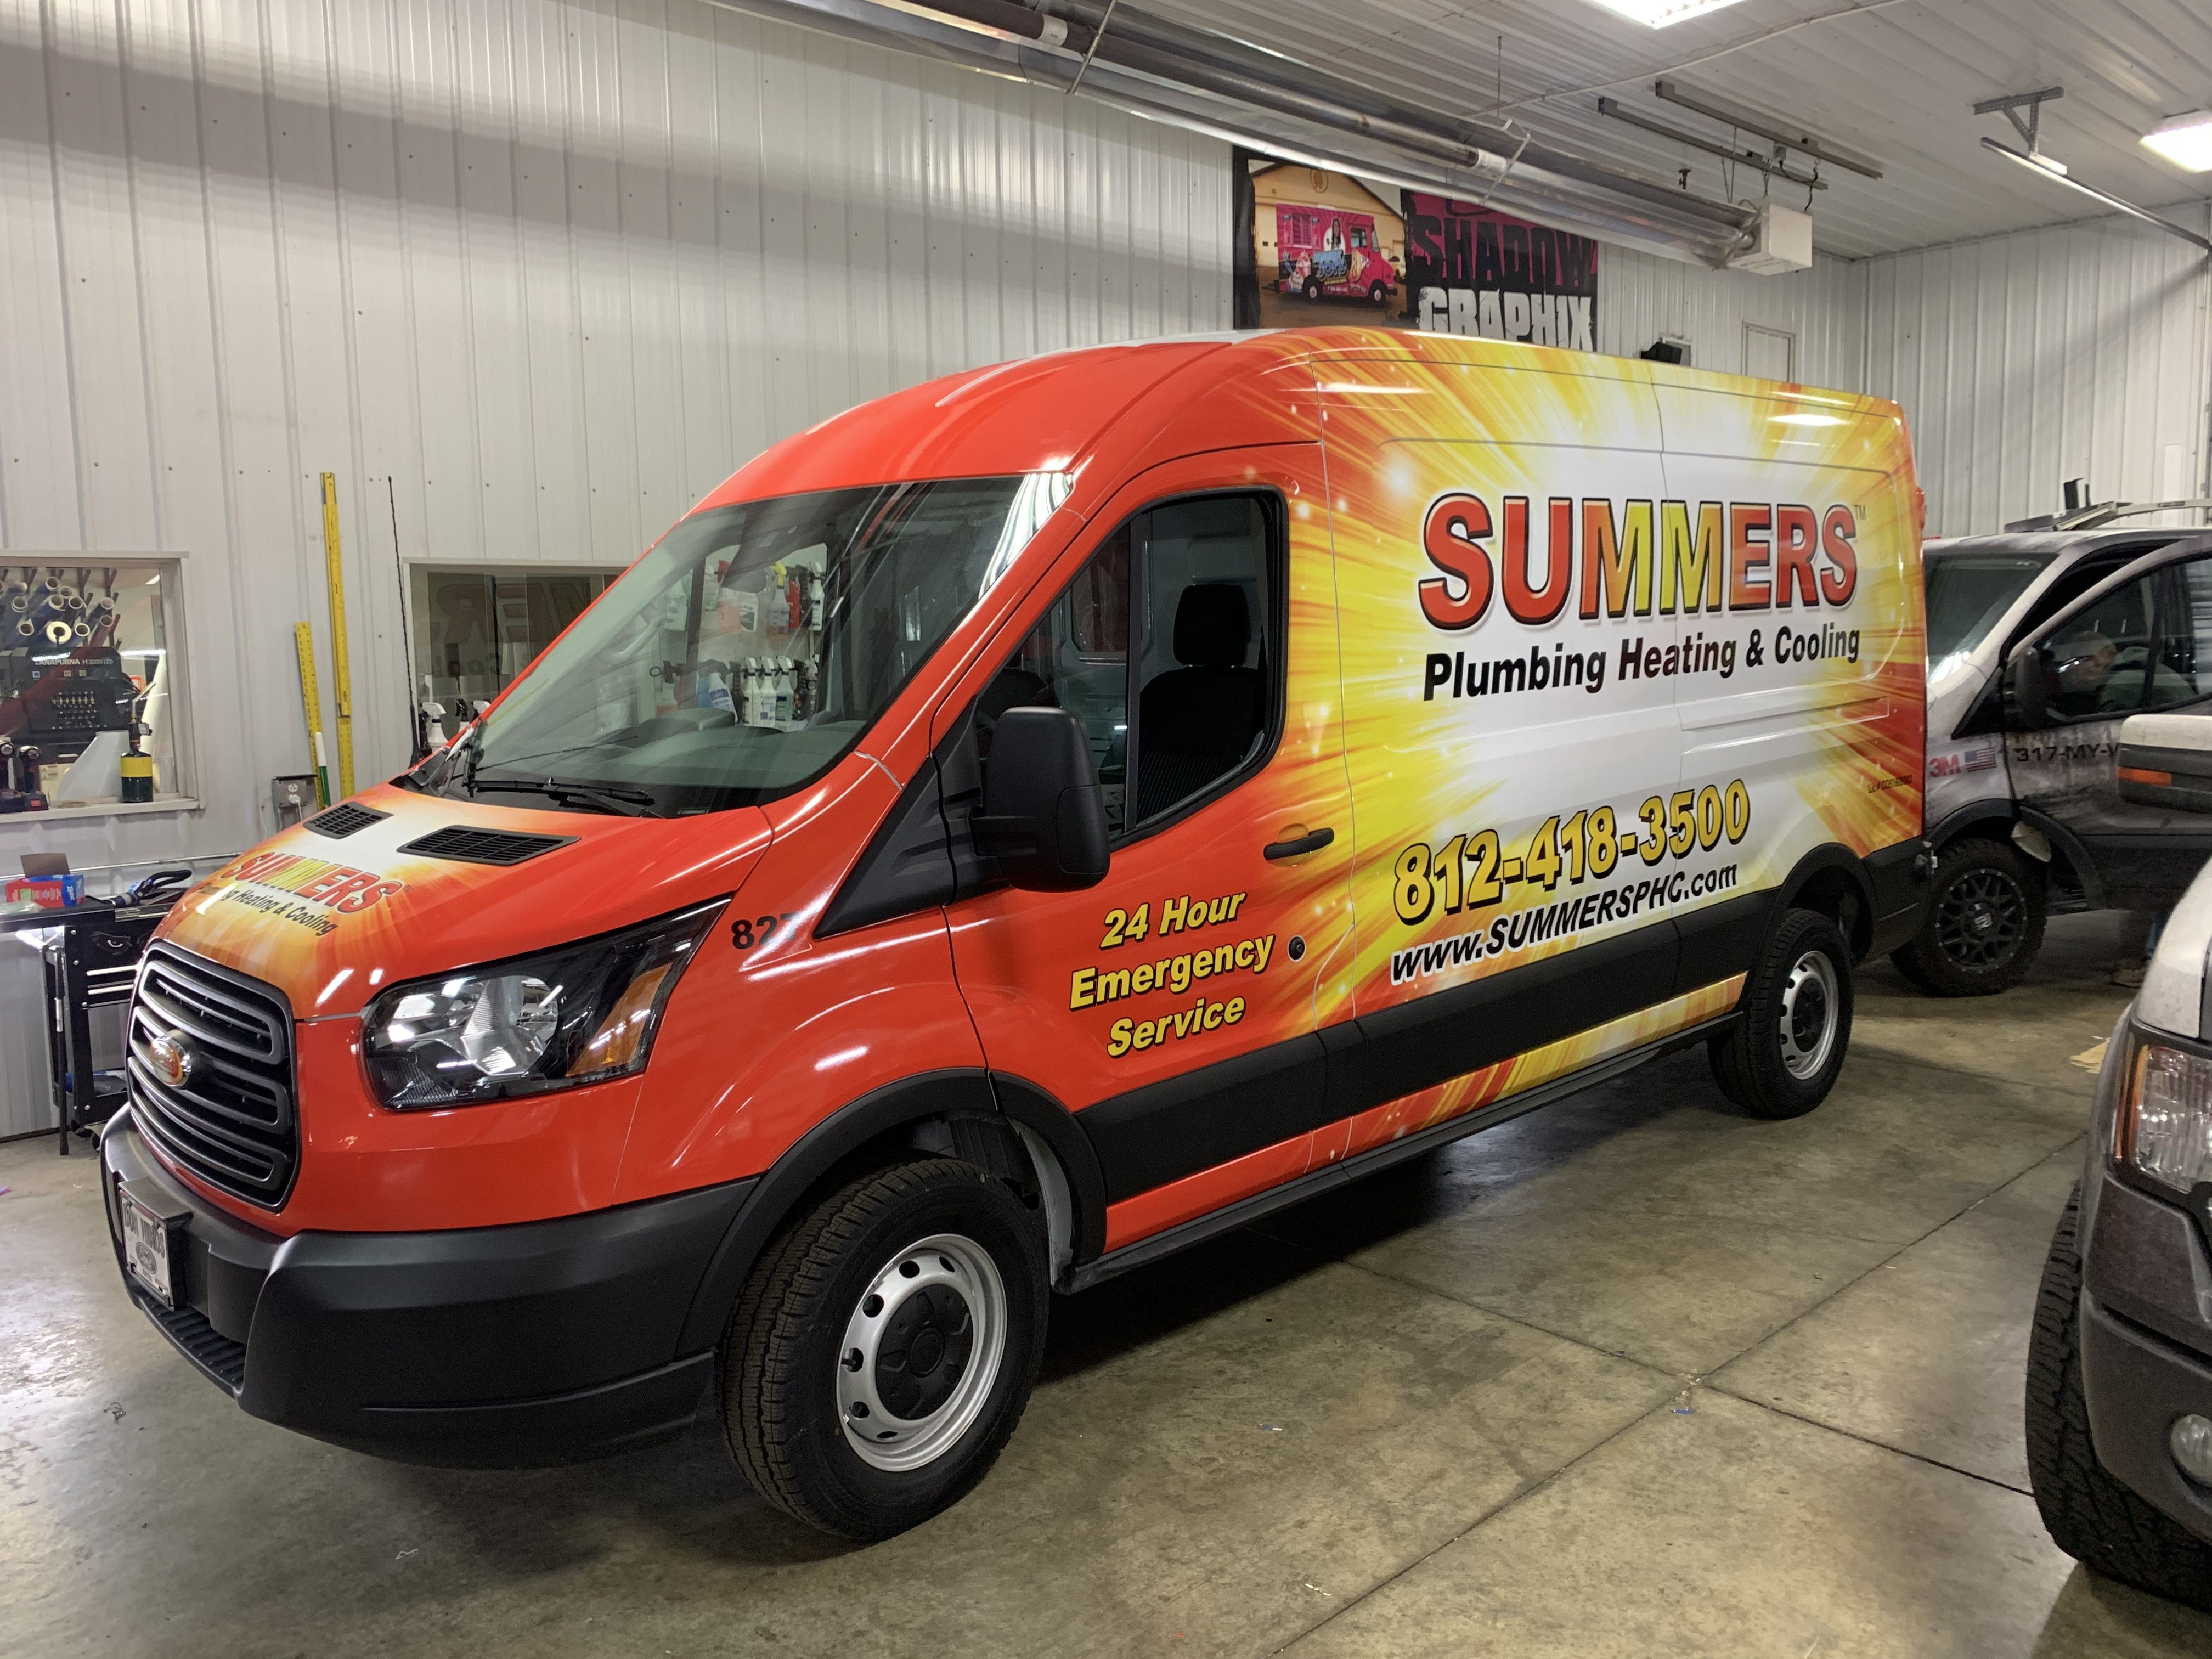 Tranist Wrap For Summers Heating And Cooling Vinyl Wrap Van